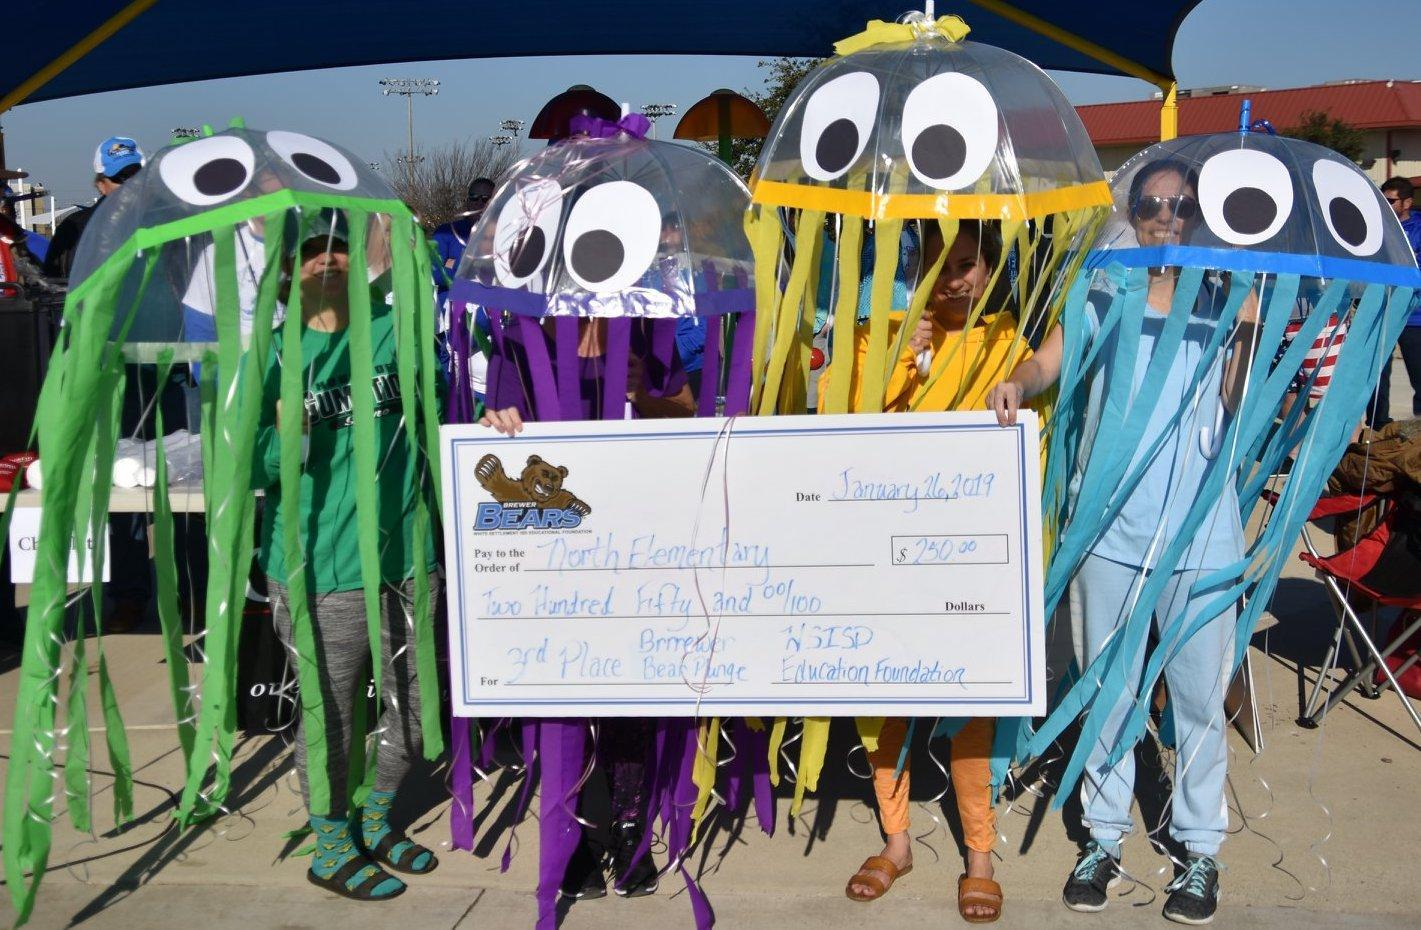 North Elementary 3rd place winner for most money raised